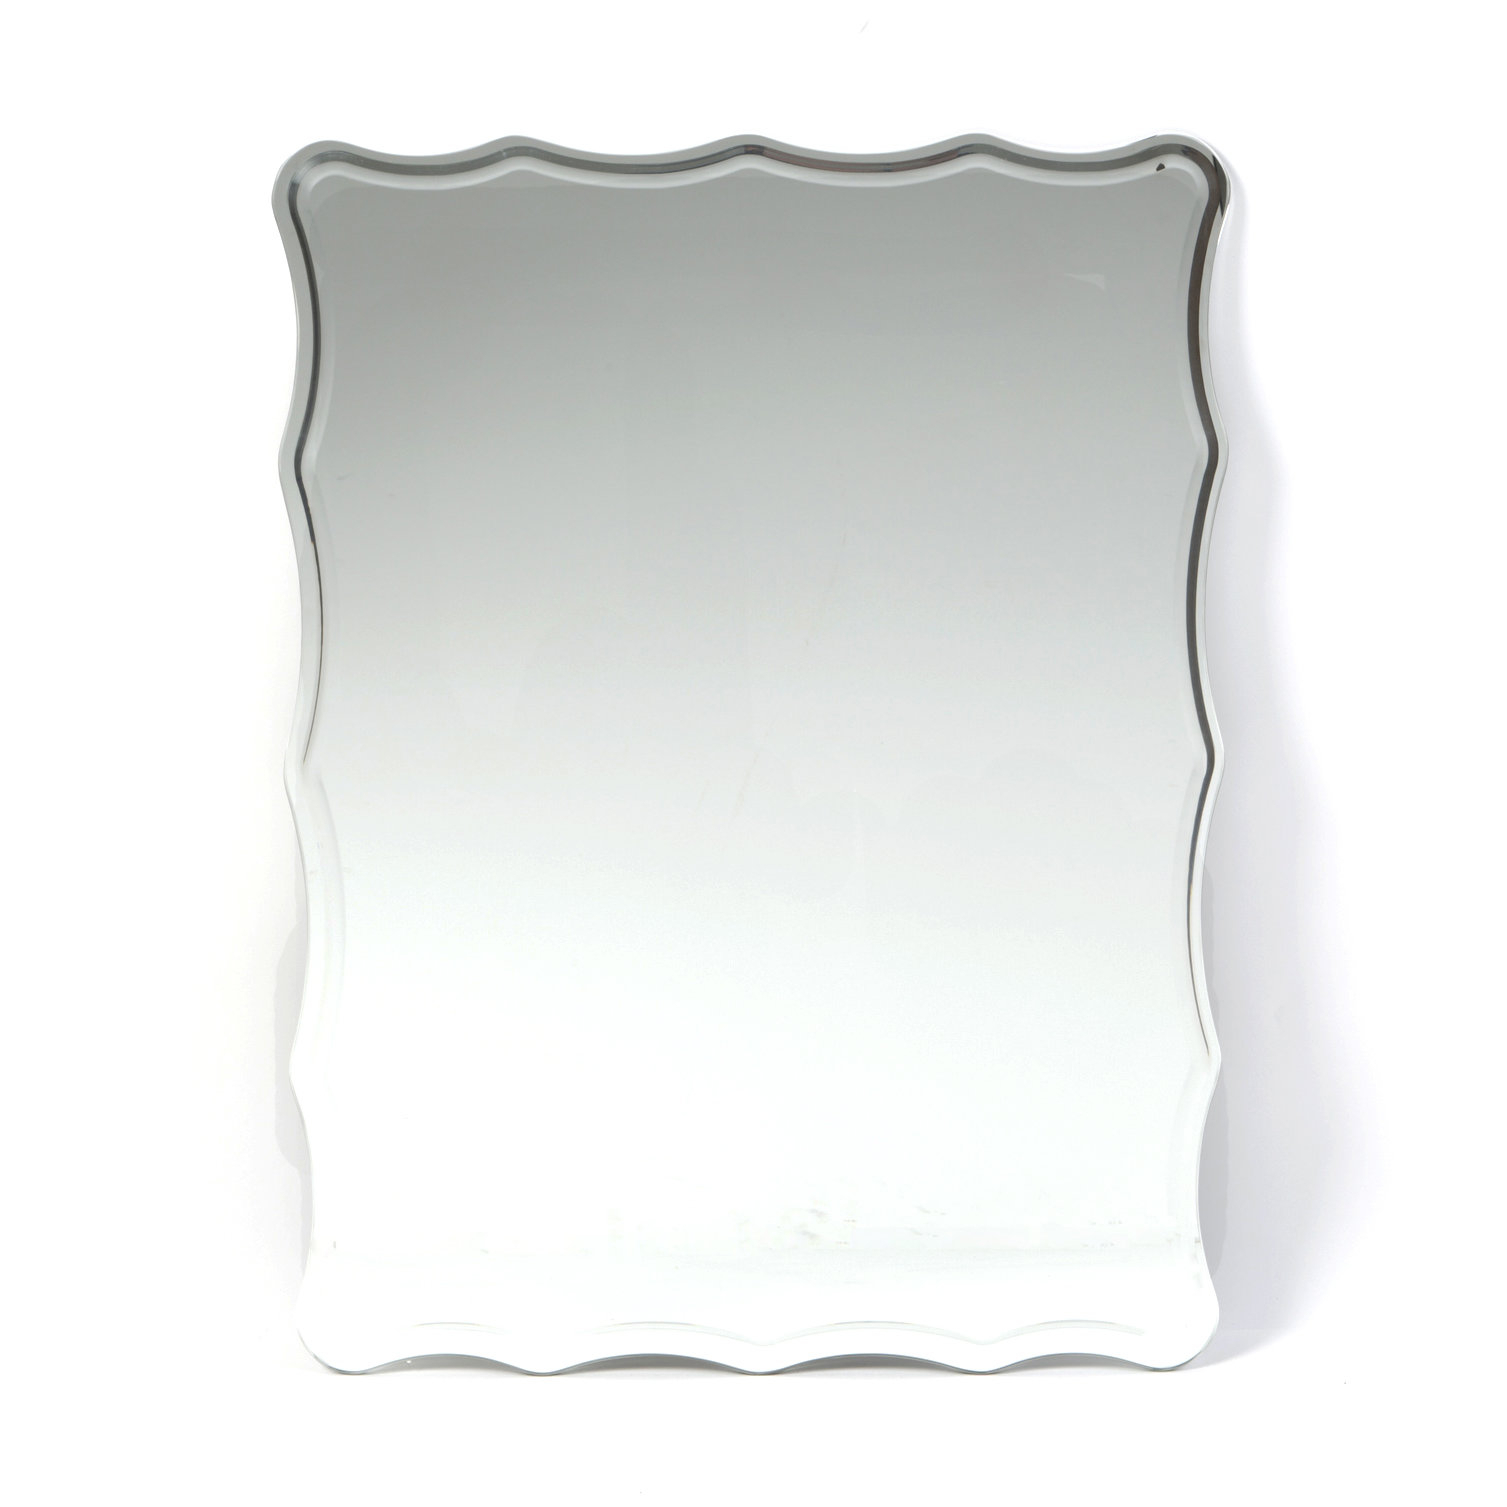 Farmhouse & Rustic Wade Logan Wall & Accent Mirrors | Birch Lane With Regard To Northend Wall Mirrors (View 7 of 20)